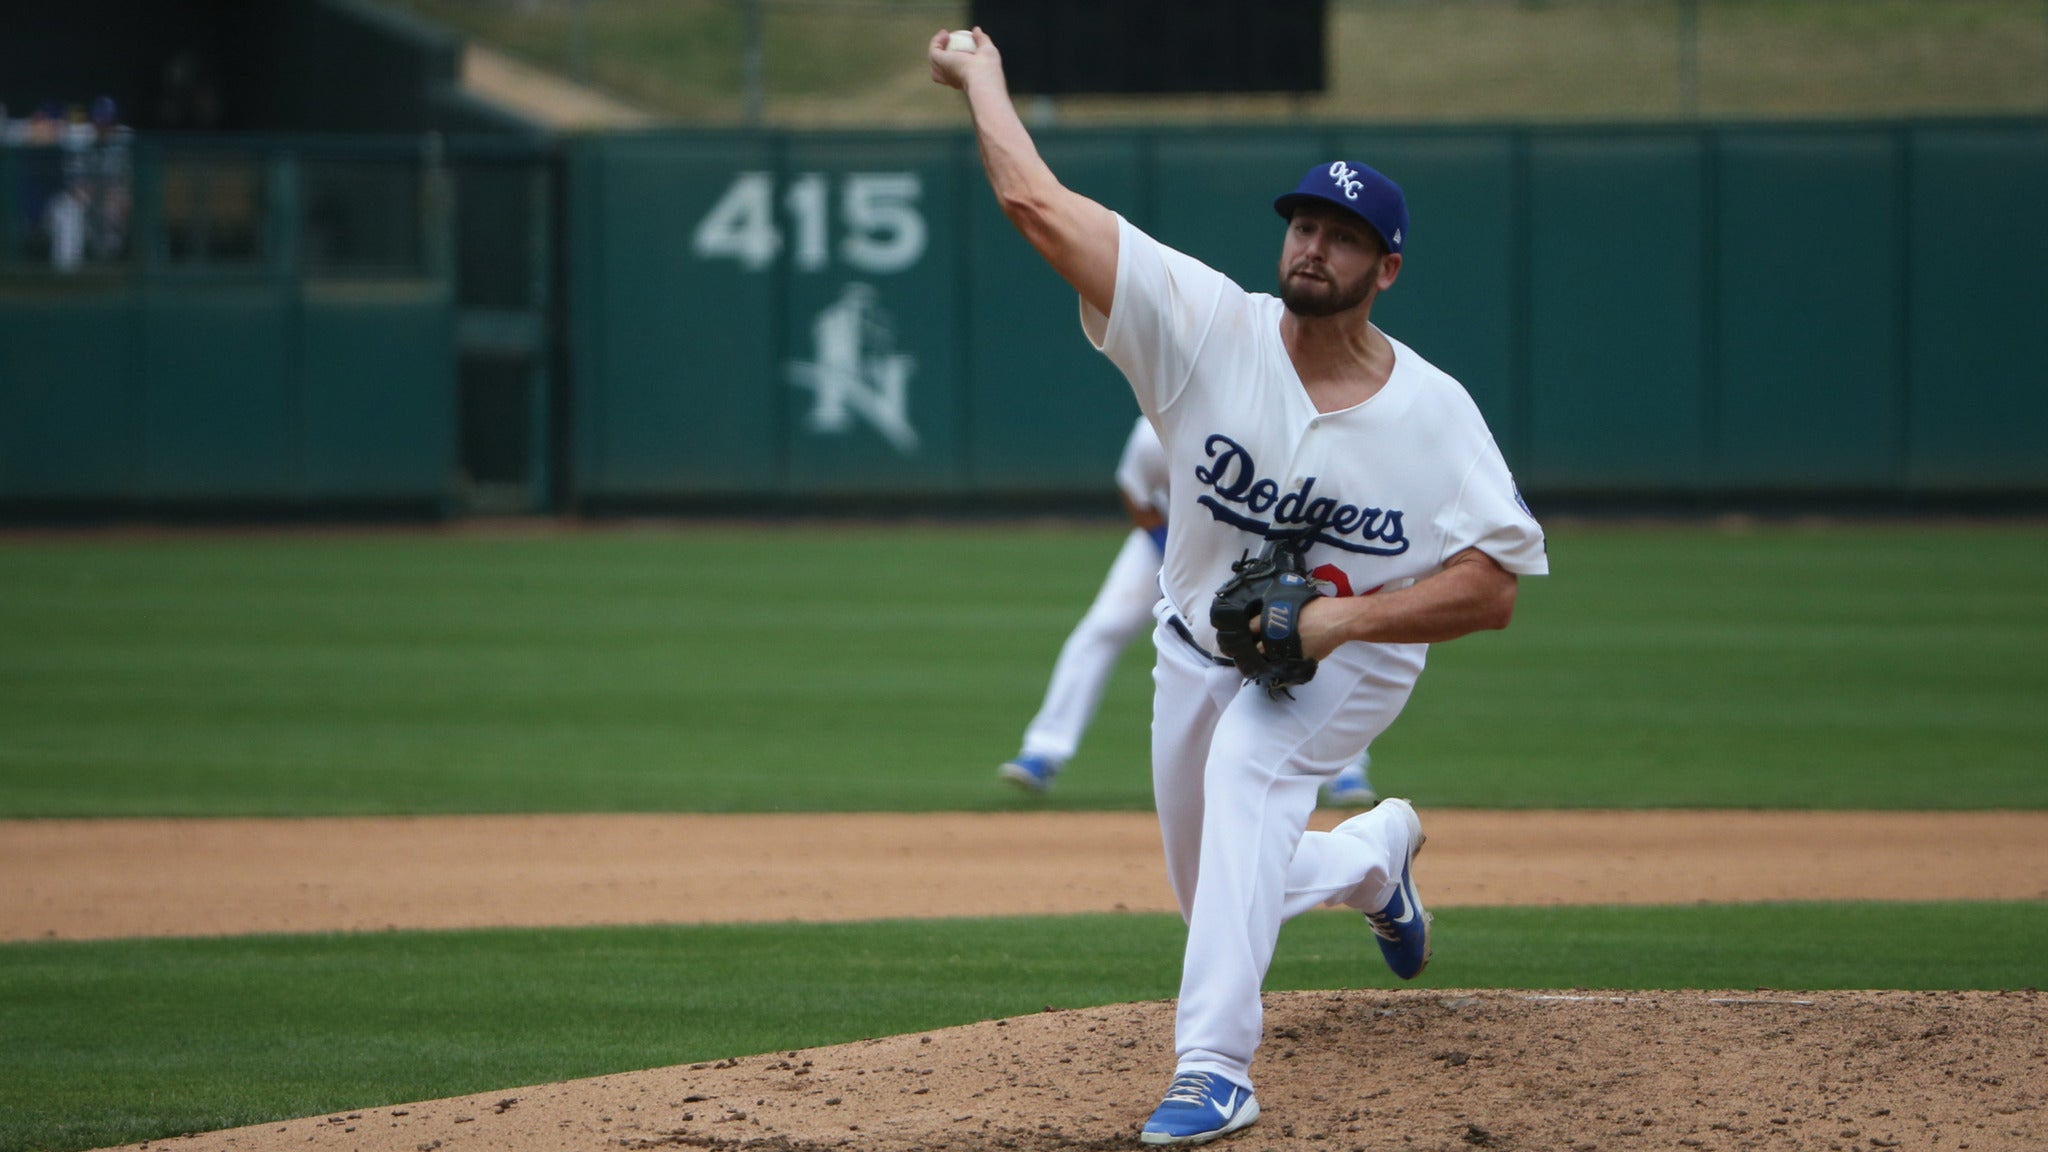 Oklahoma City Dodgers vs. San Antonio Missions